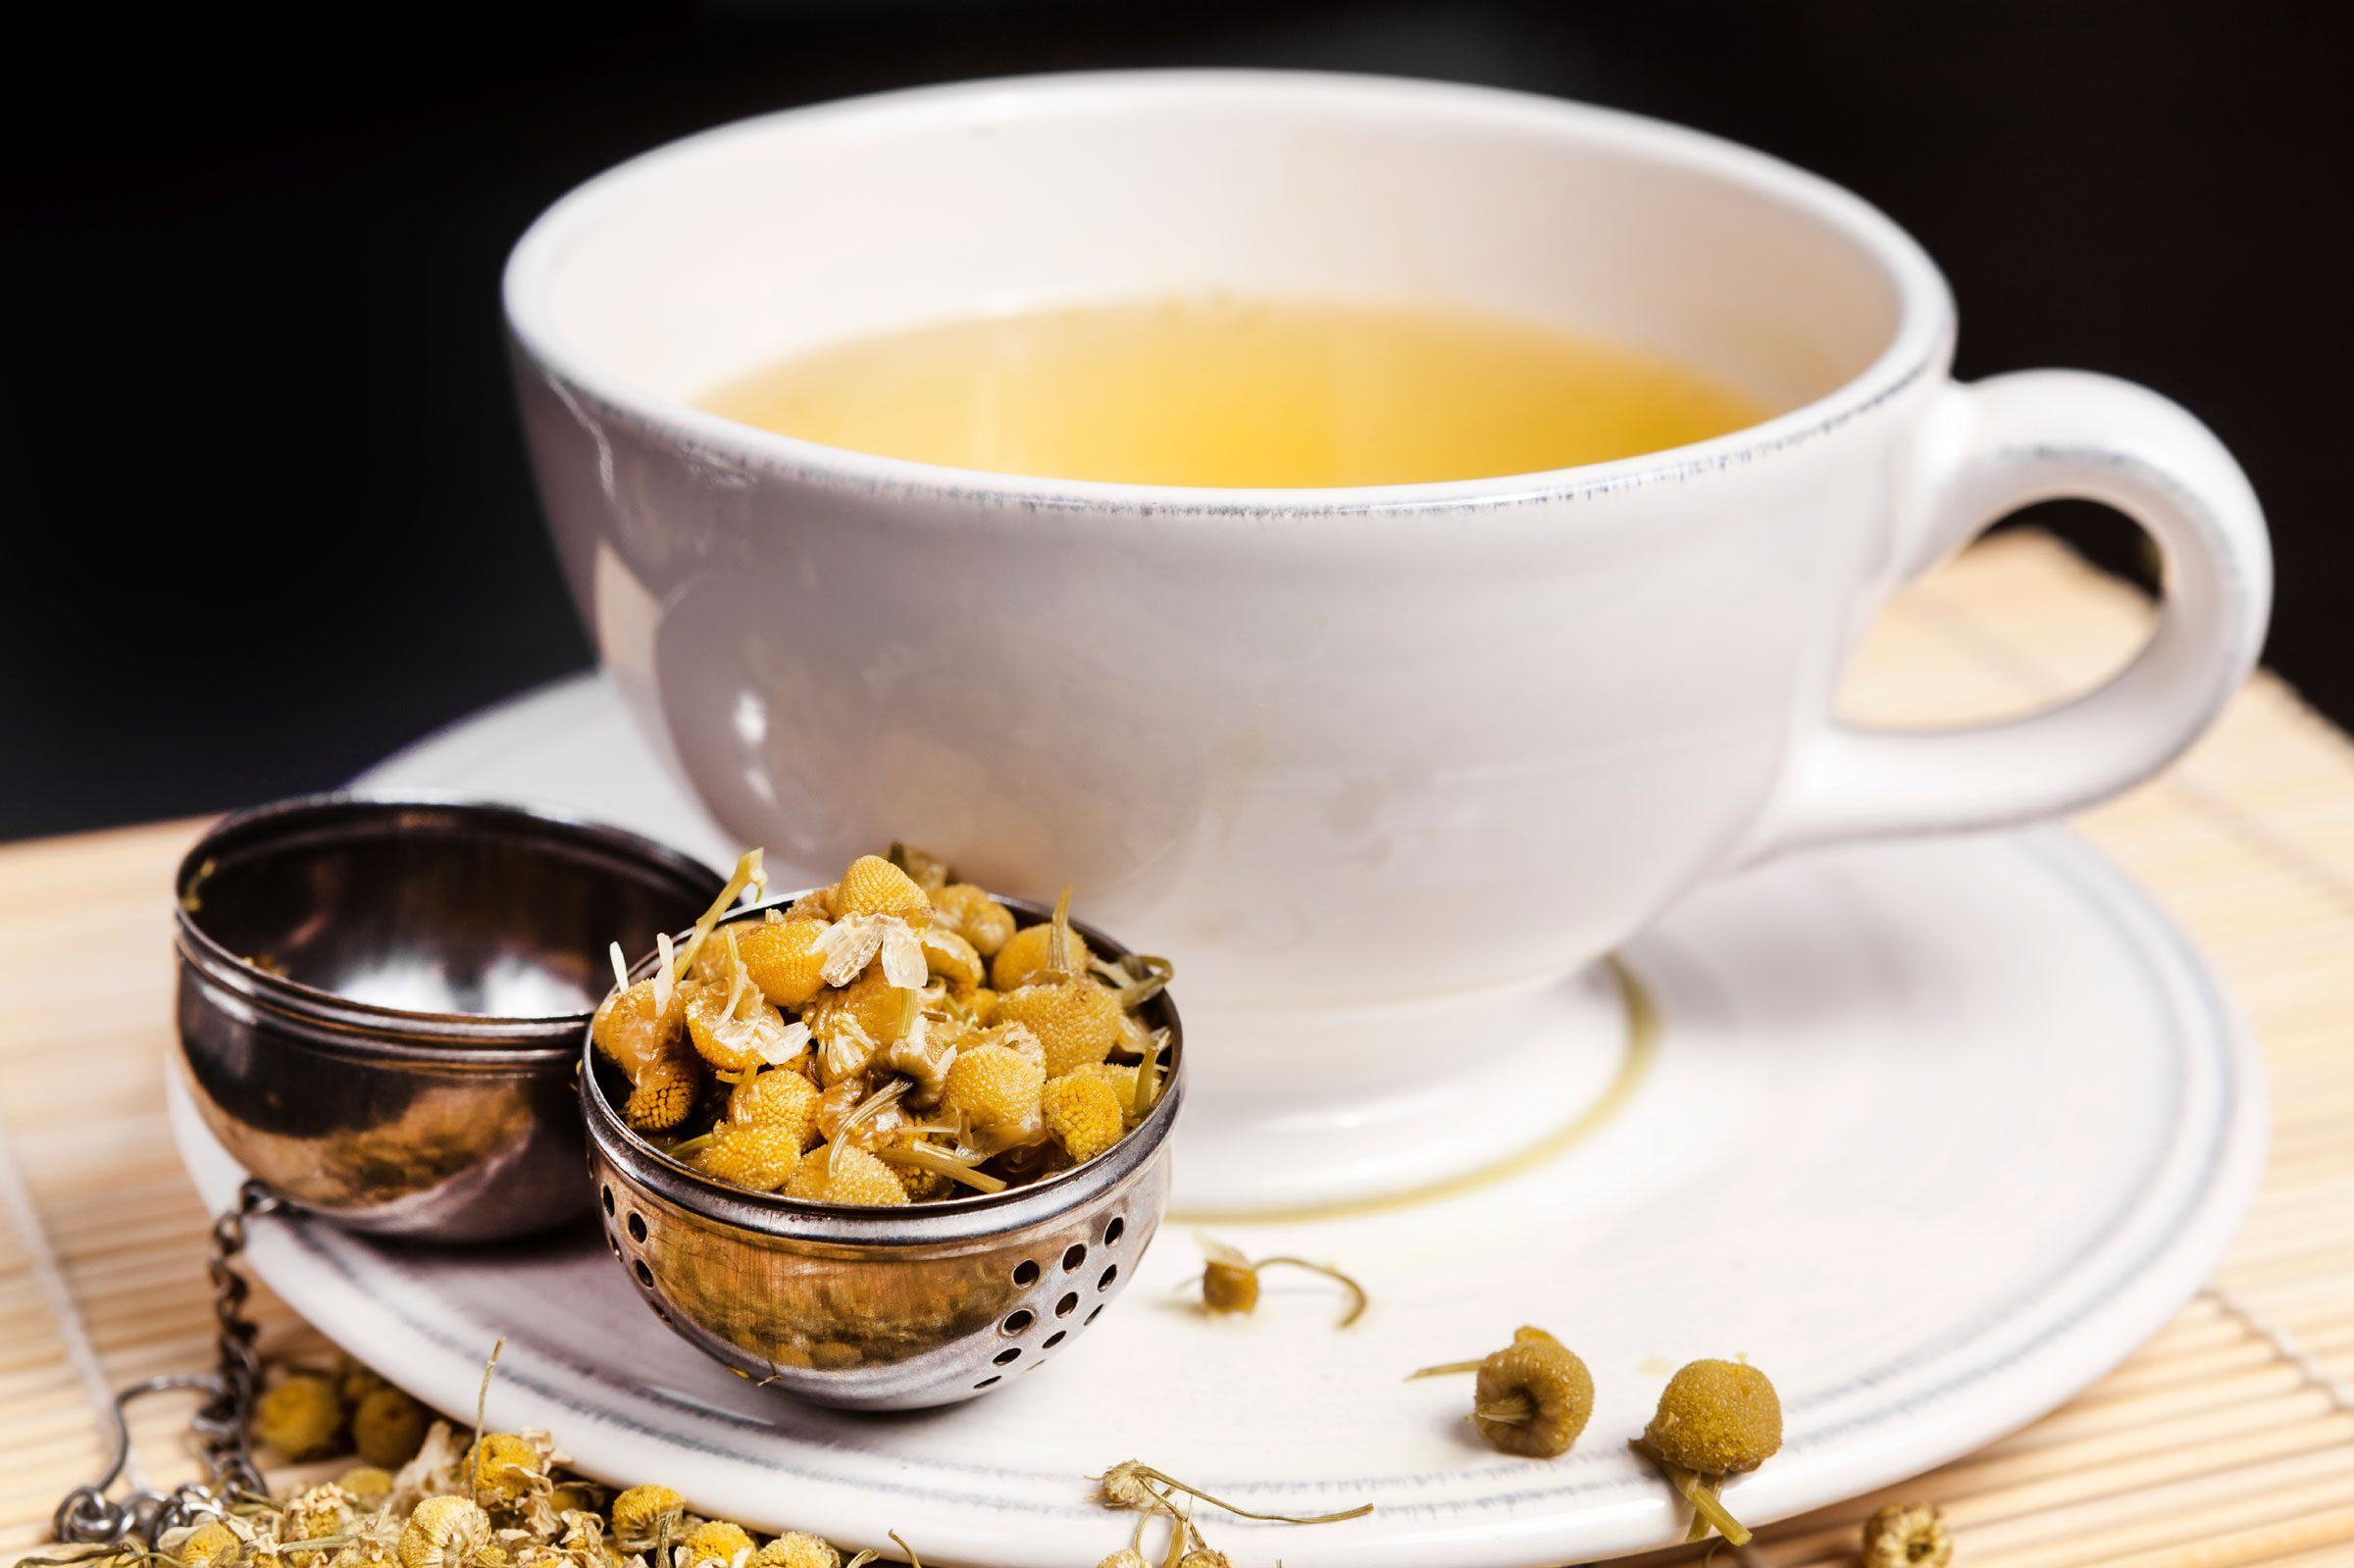 Headache home remedy: Brew chamomile tea